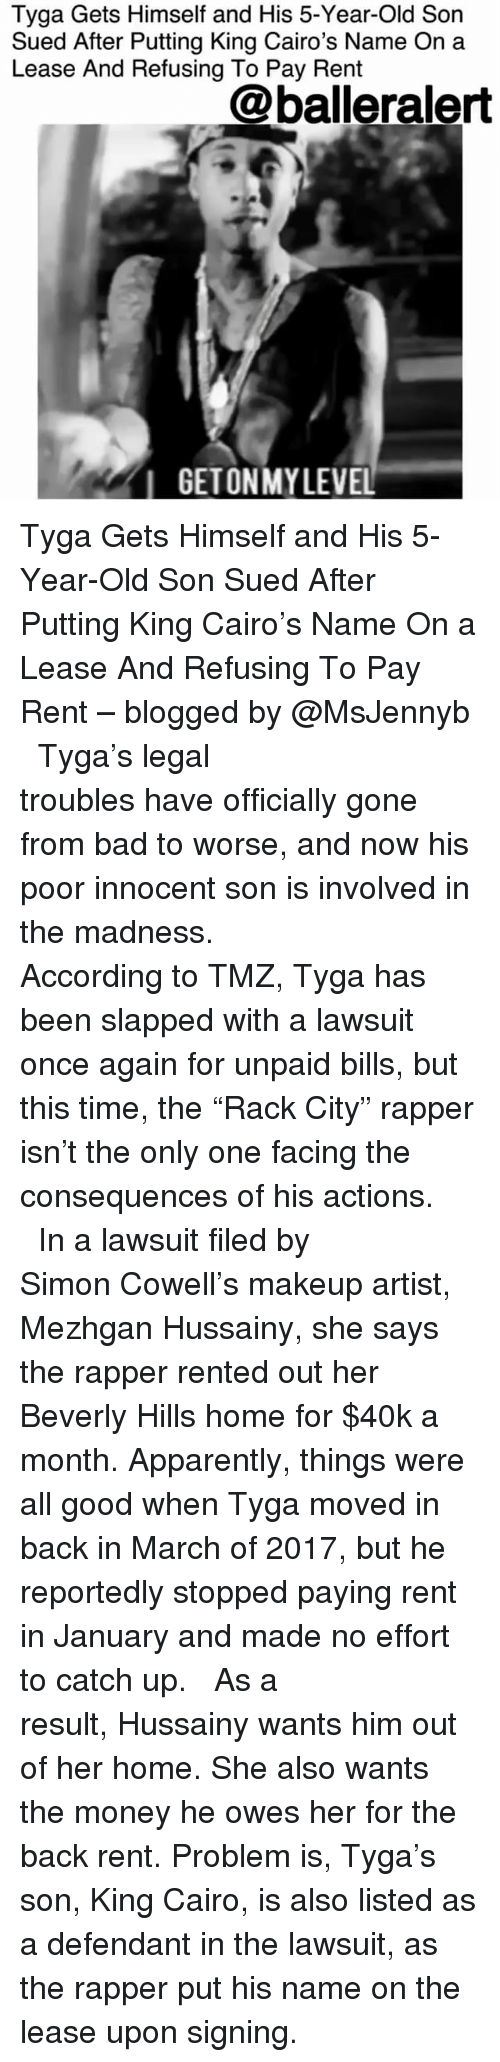 """Apparently, Bad, and Makeup: Tyga Gets Himself and His 5-Year-Old Son  Sued After Putting King Cairo's Name On a  Lease And Refusing To Pay Rent  @balleralert  IGETONMYLEVEL Tyga Gets Himself and His 5-Year-Old Son Sued After Putting King Cairo's Name On a Lease And Refusing To Pay Rent – blogged by @MsJennyb ⠀⠀⠀⠀⠀⠀⠀⠀⠀ ⠀⠀⠀⠀⠀⠀⠀⠀⠀ Tyga's legal troubles have officially gone from bad to worse, and now his poor innocent son is involved in the madness. ⠀⠀⠀⠀⠀⠀⠀⠀⠀ ⠀⠀⠀⠀⠀⠀⠀⠀⠀ According to TMZ, Tyga has been slapped with a lawsuit once again for unpaid bills, but this time, the """"Rack City"""" rapper isn't the only one facing the consequences of his actions. ⠀⠀⠀⠀⠀⠀⠀⠀⠀ ⠀⠀⠀⠀⠀⠀⠀⠀⠀ In a lawsuit filed by Simon Cowell's makeup artist, Mezhgan Hussainy, she says the rapper rented out her Beverly Hills home for $40k a month. Apparently, things were all good when Tyga moved in back in March of 2017, but he reportedly stopped paying rent in January and made no effort to catch up. ⠀⠀⠀⠀⠀⠀⠀⠀⠀ ⠀⠀⠀⠀⠀⠀⠀⠀⠀ As a result, Hussainy wants him out of her home. She also wants the money he owes her for the back rent. Problem is, Tyga's son, King Cairo, is also listed as a defendant in the lawsuit, as the rapper put his name on the lease upon signing."""